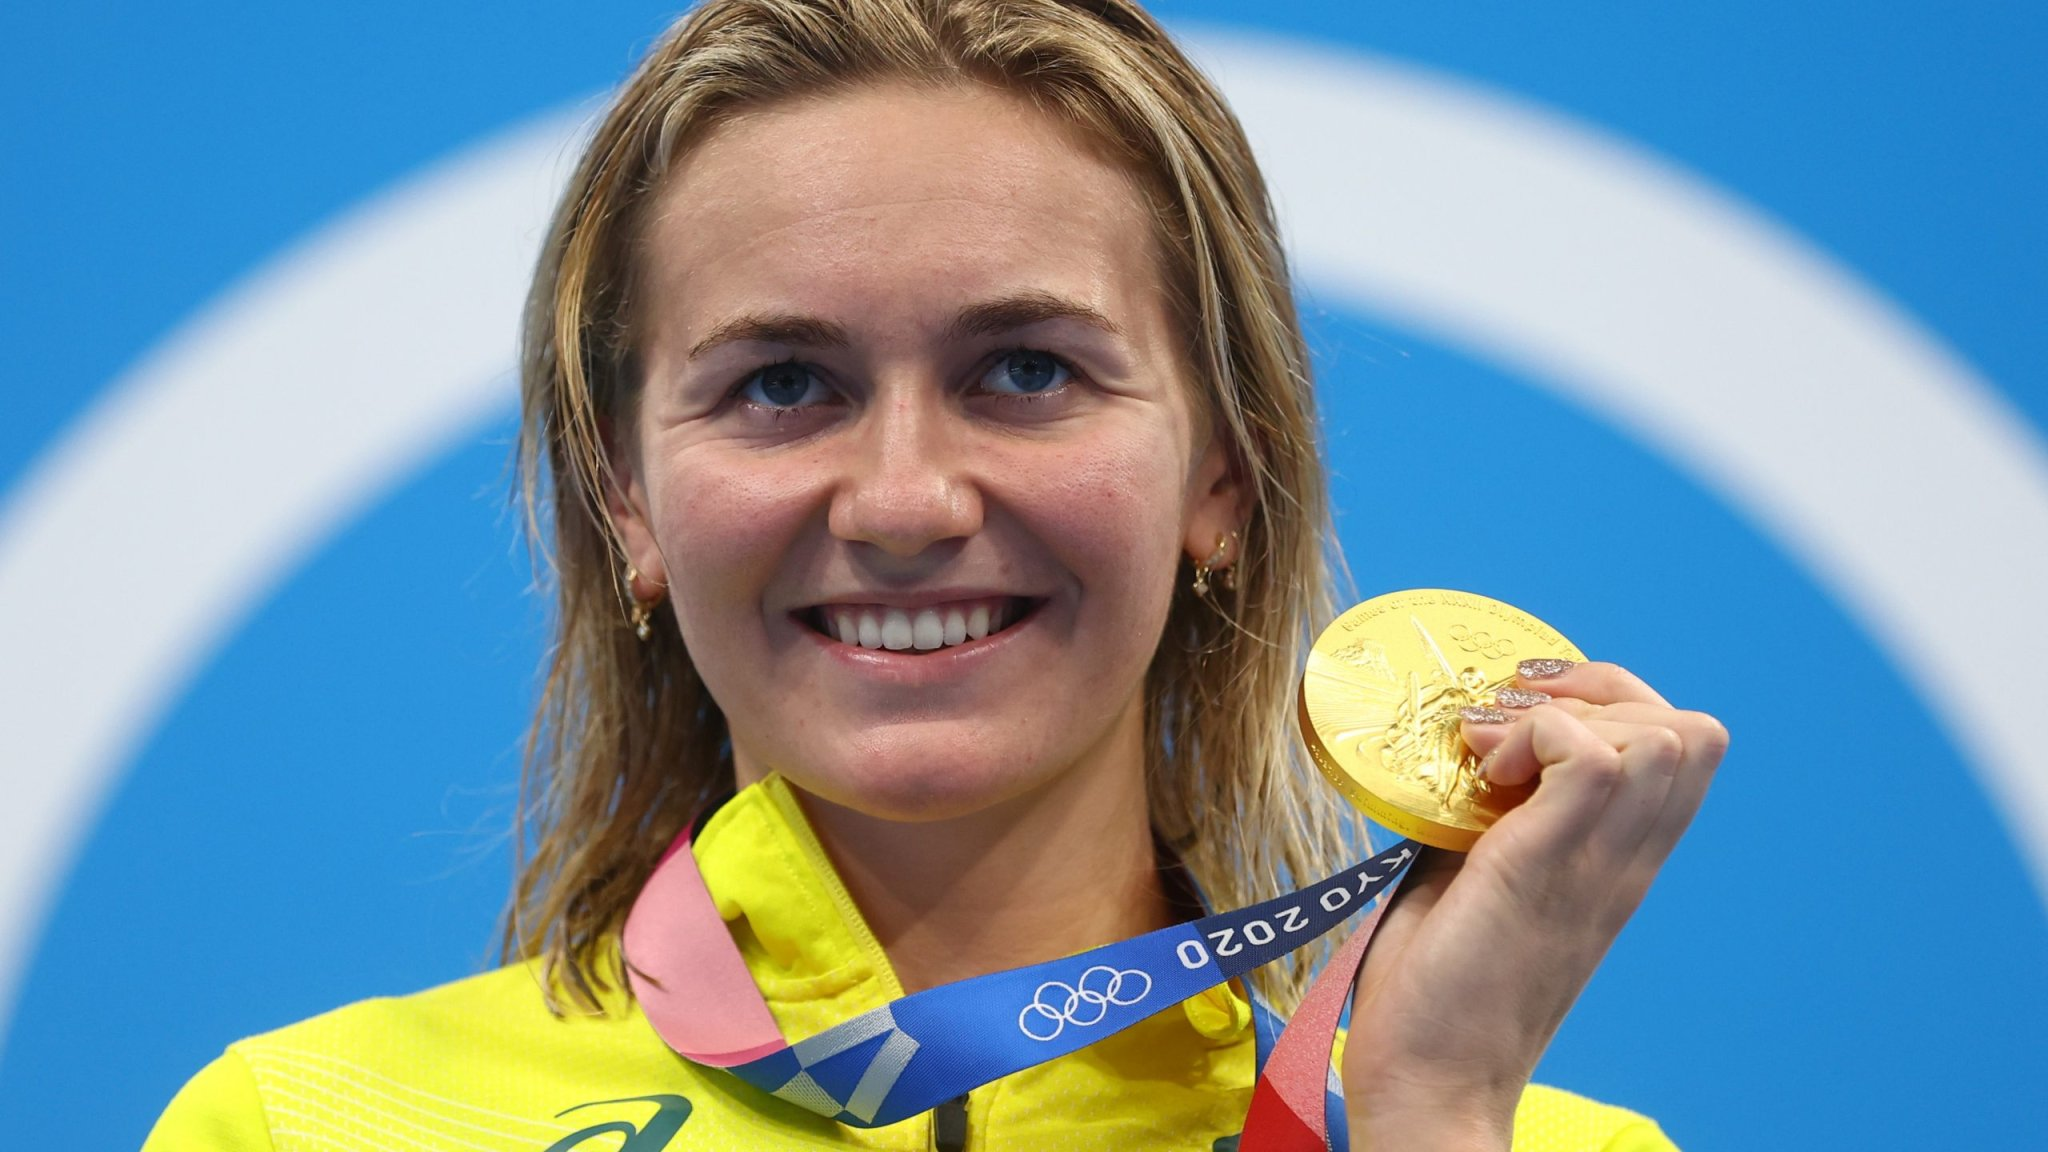 Olympics-Swimming-'Small town' girl Titmus wins 200m freestyle thriller